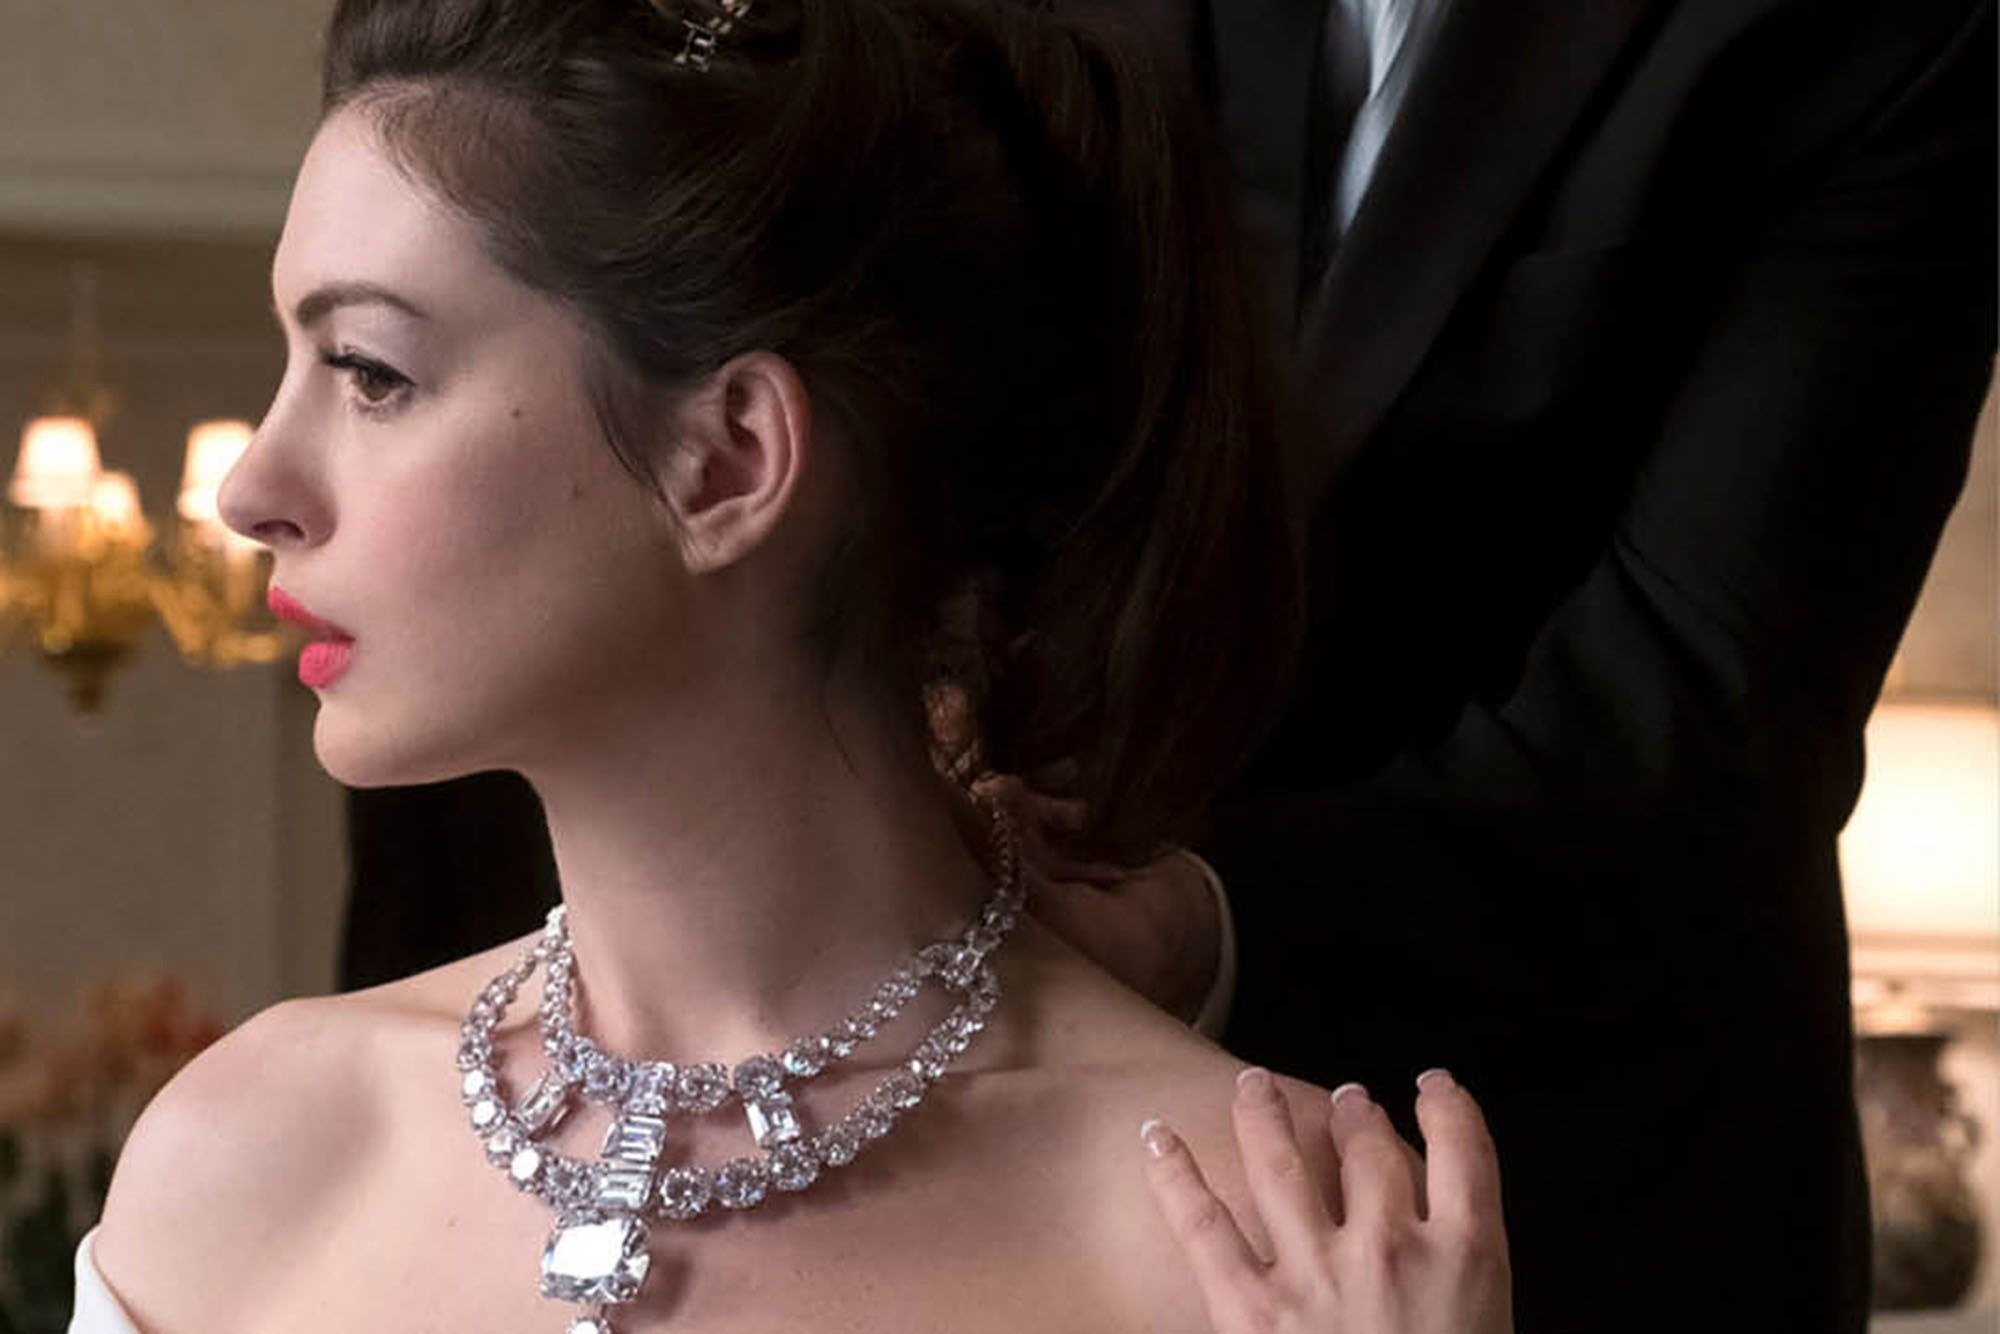 Ocean's 8 scene where Anne Hathaway's character has the priceless necklace put on her neck before the Met Ball